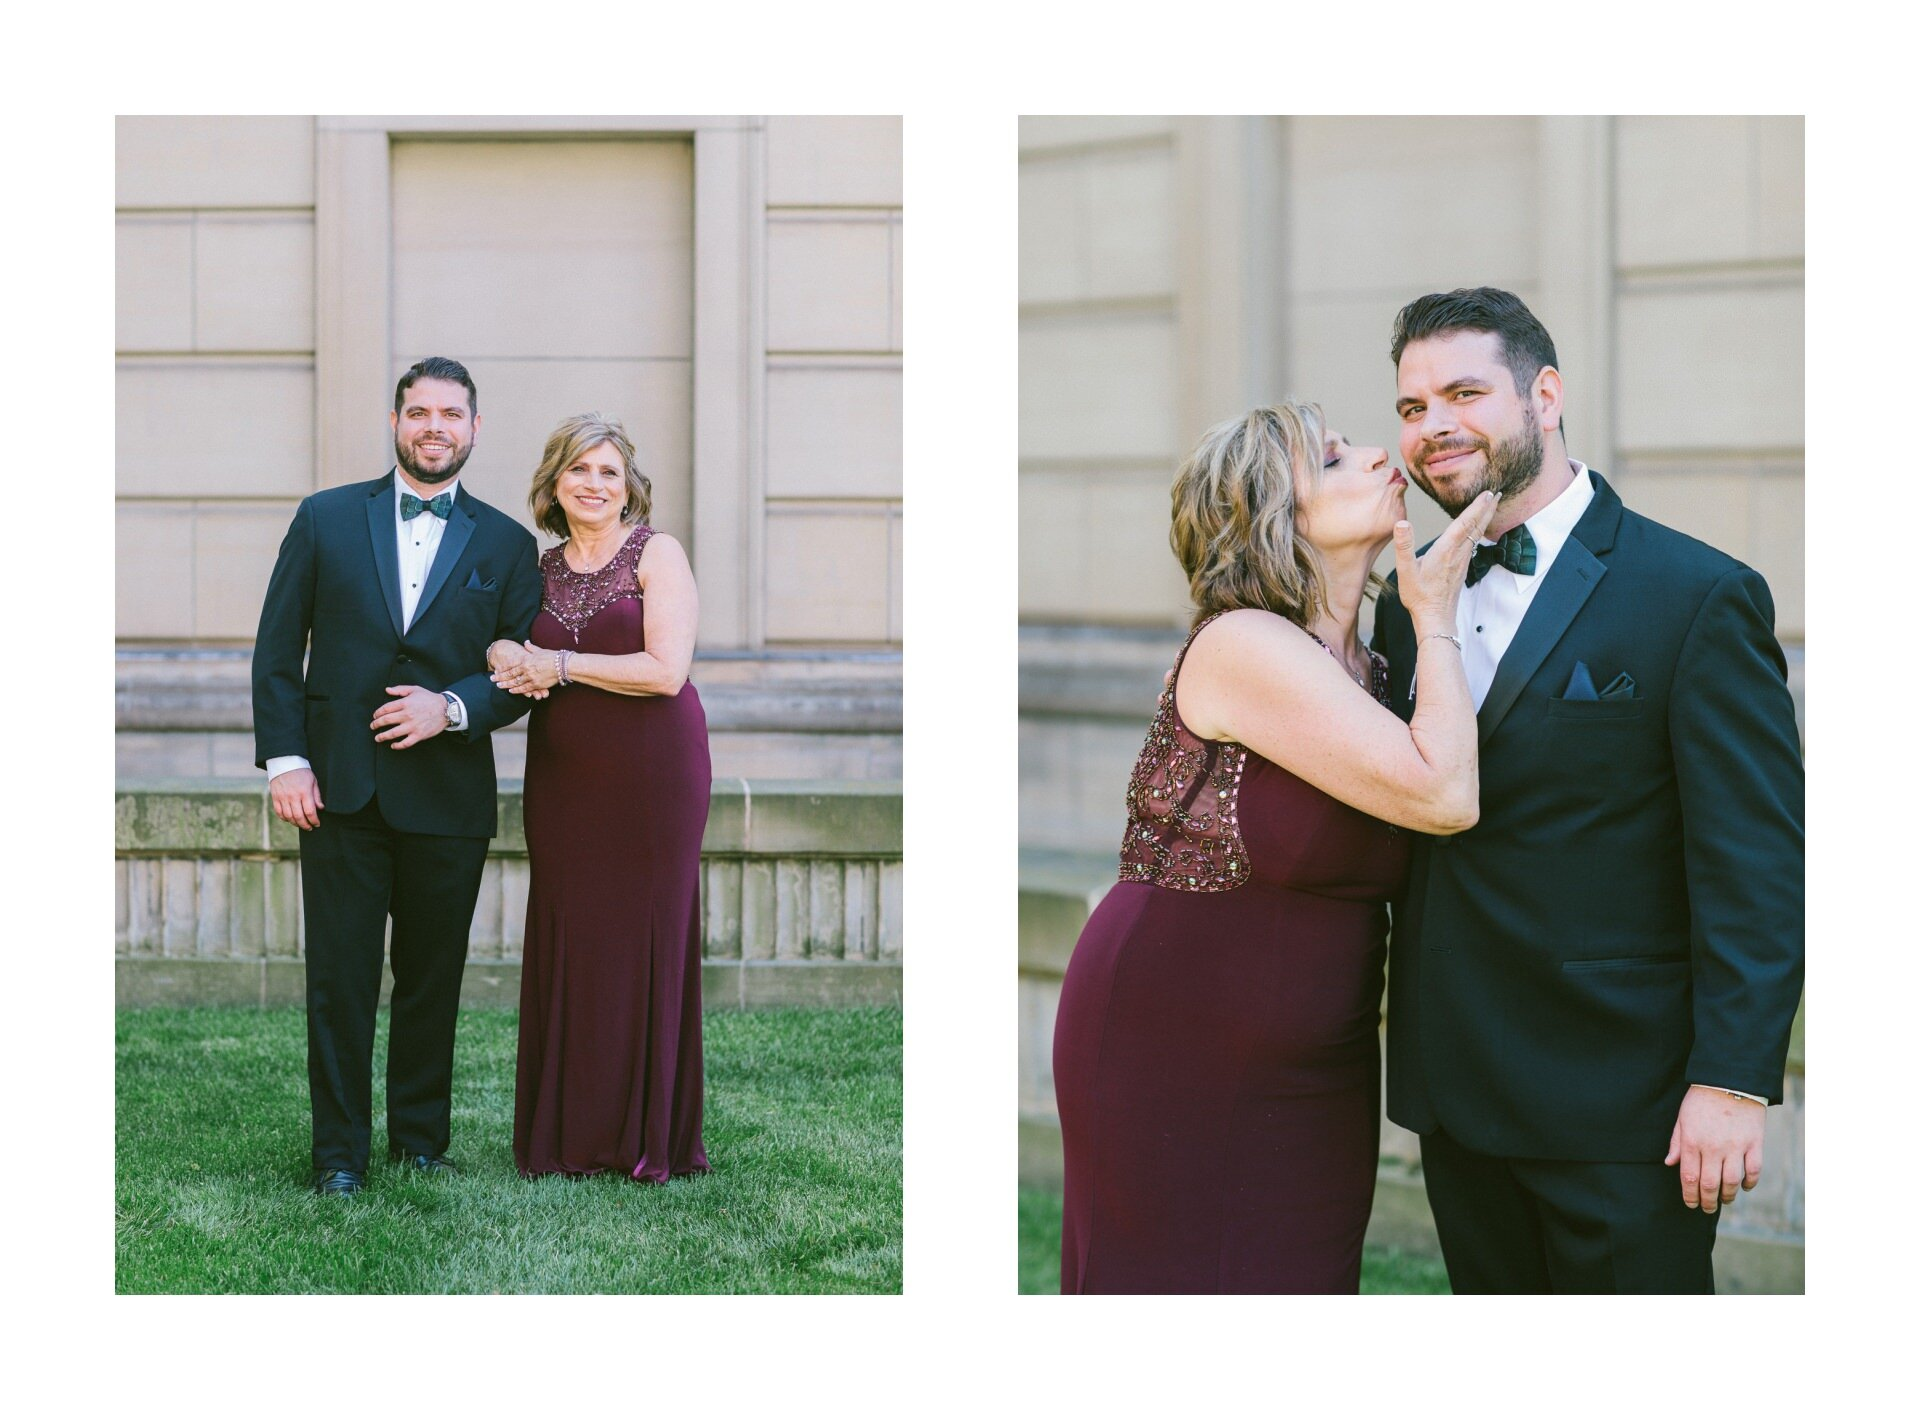 Playhouse State Theater Wedding Photographer in Cleveland 1 31.jpg